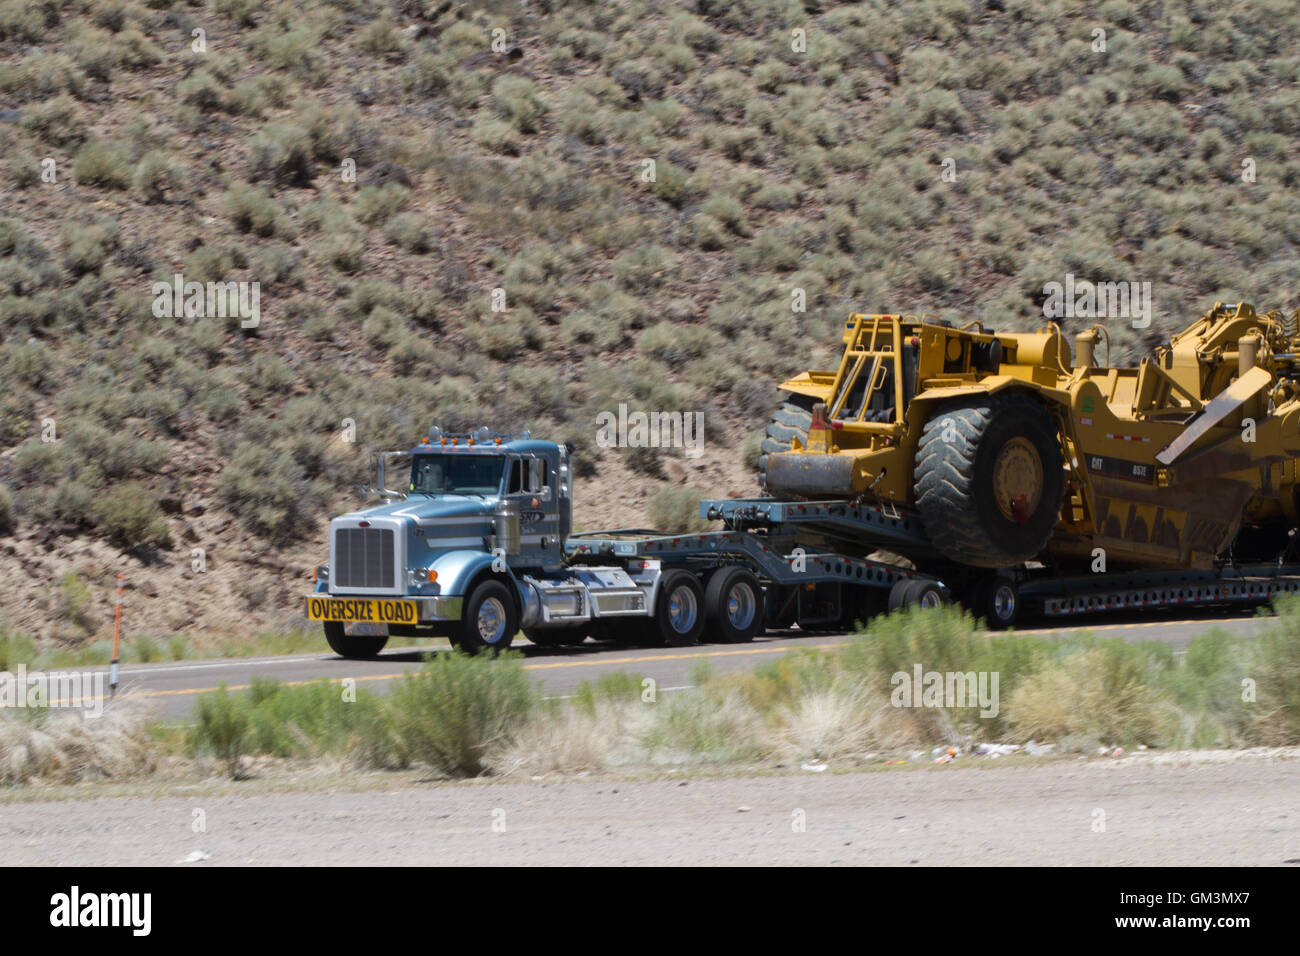 Large truck hauling an earth moving machine. USA - Stock Image